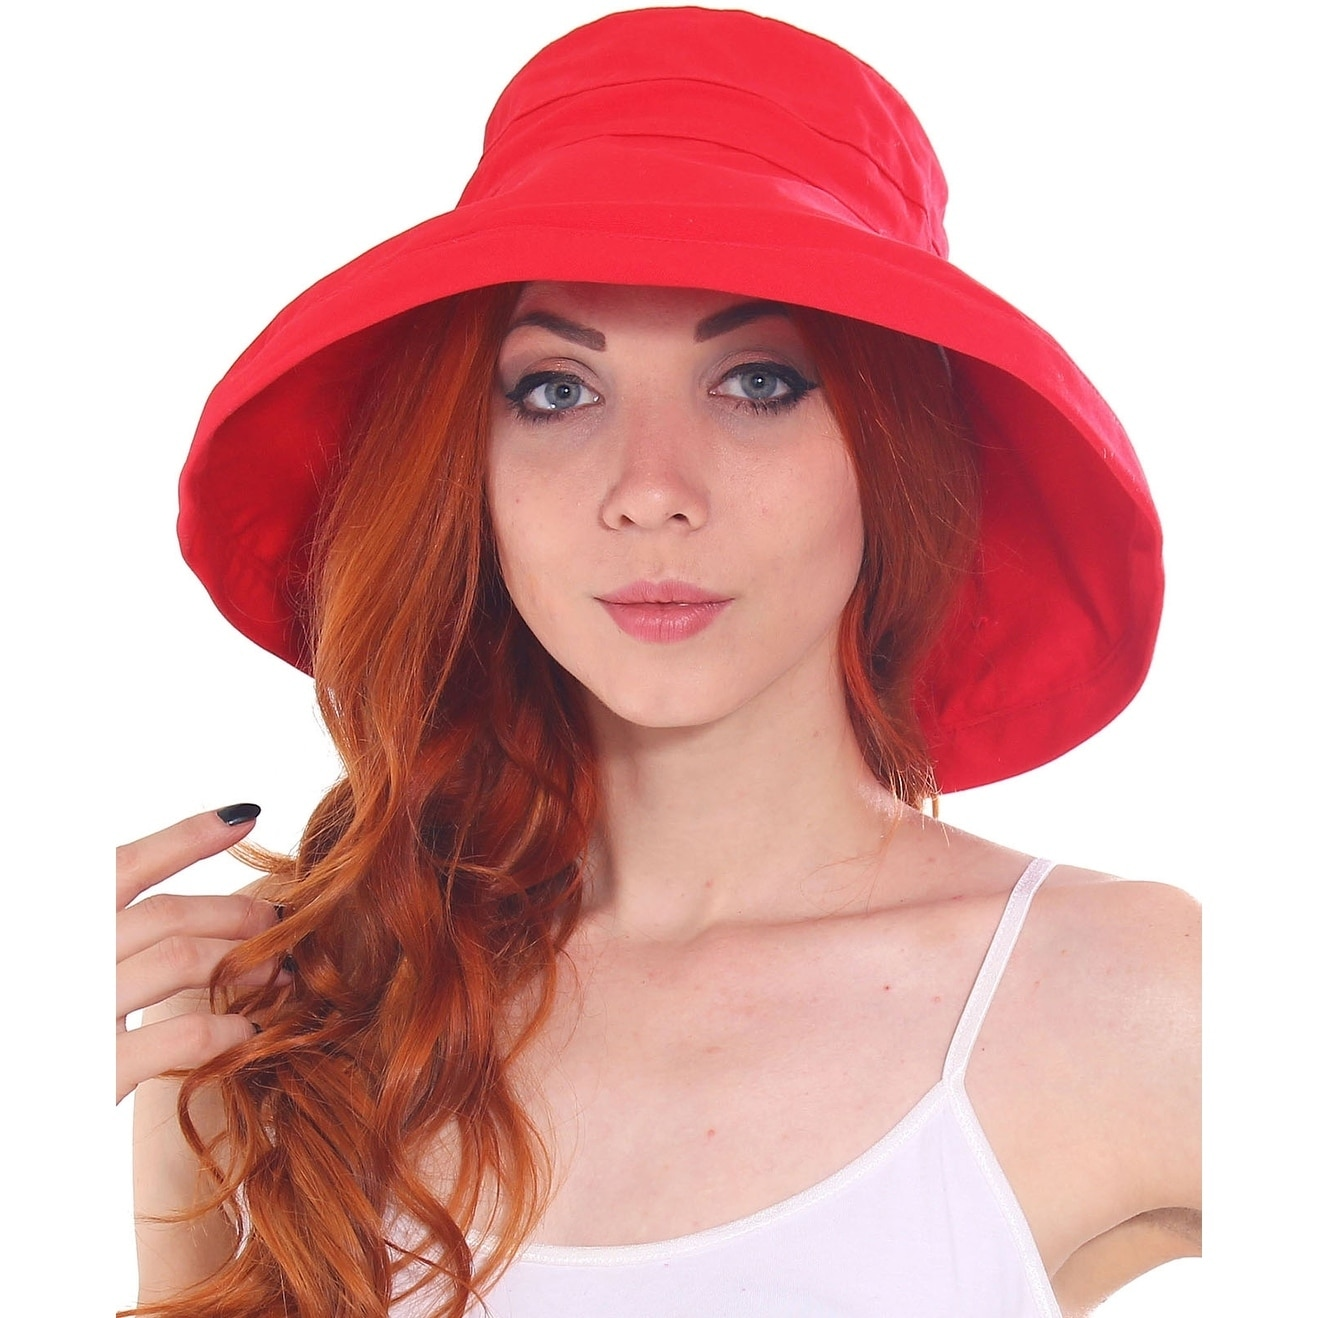 f5b3e76f786 Shop Women s Cotton Foldable Summer Sun Hat w  Bow - On Sale - Free  Shipping On Orders Over  45 - Overstock.com - 19996321